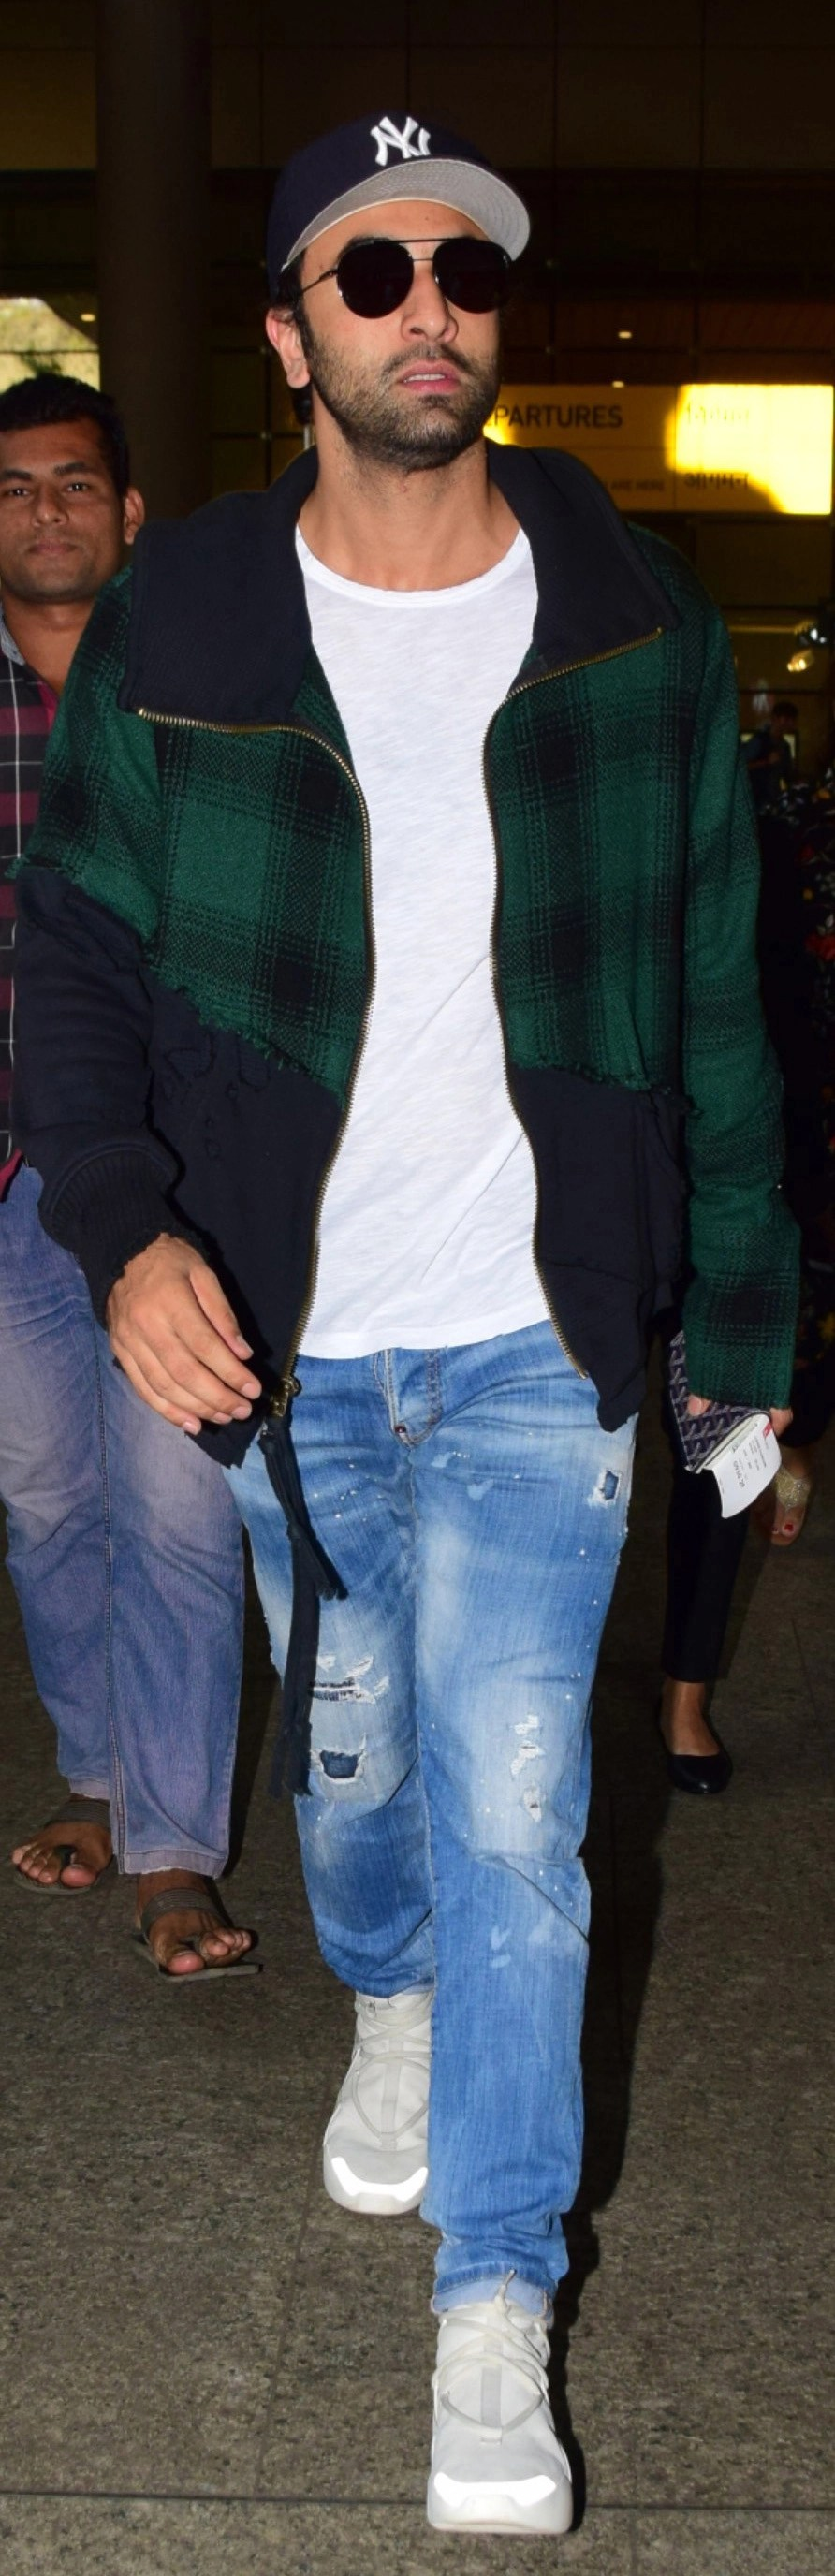 Ranbir went for a hip sporty athleisure look with oversized jacket, trainers and baseball cap.